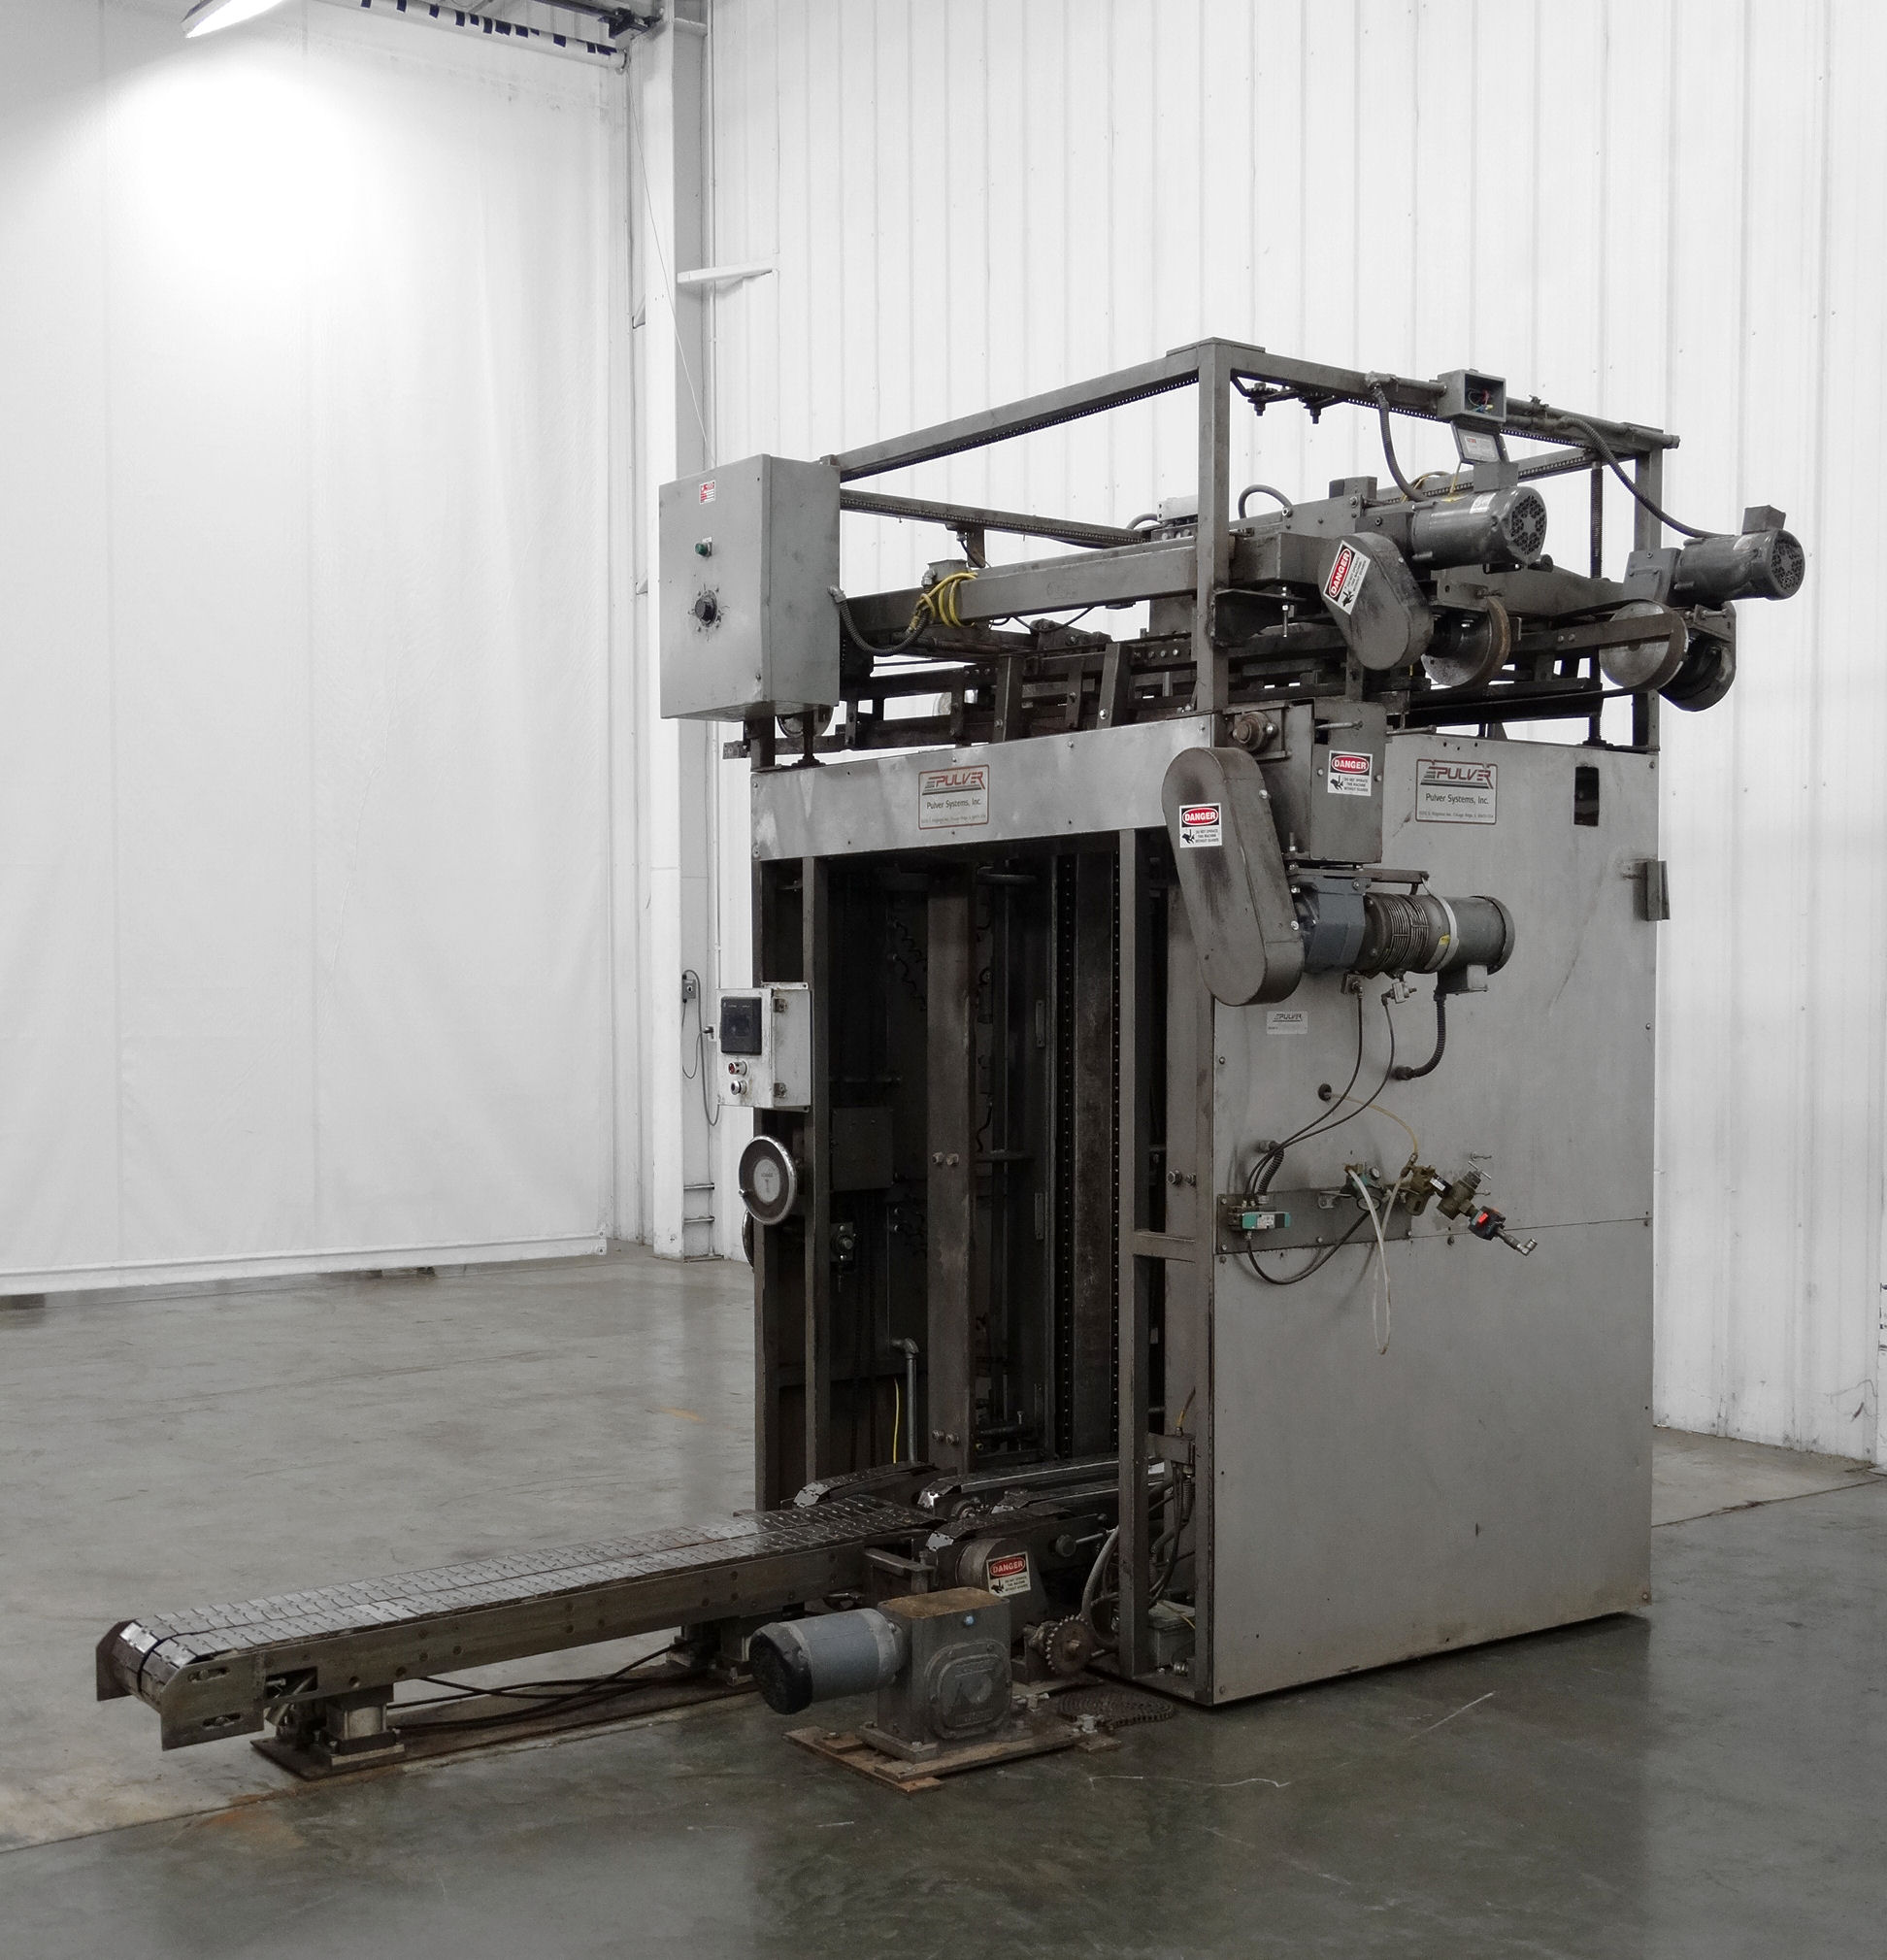 Pulver Stainless Steel Pan Stacker B4409 - Image 3 of 11